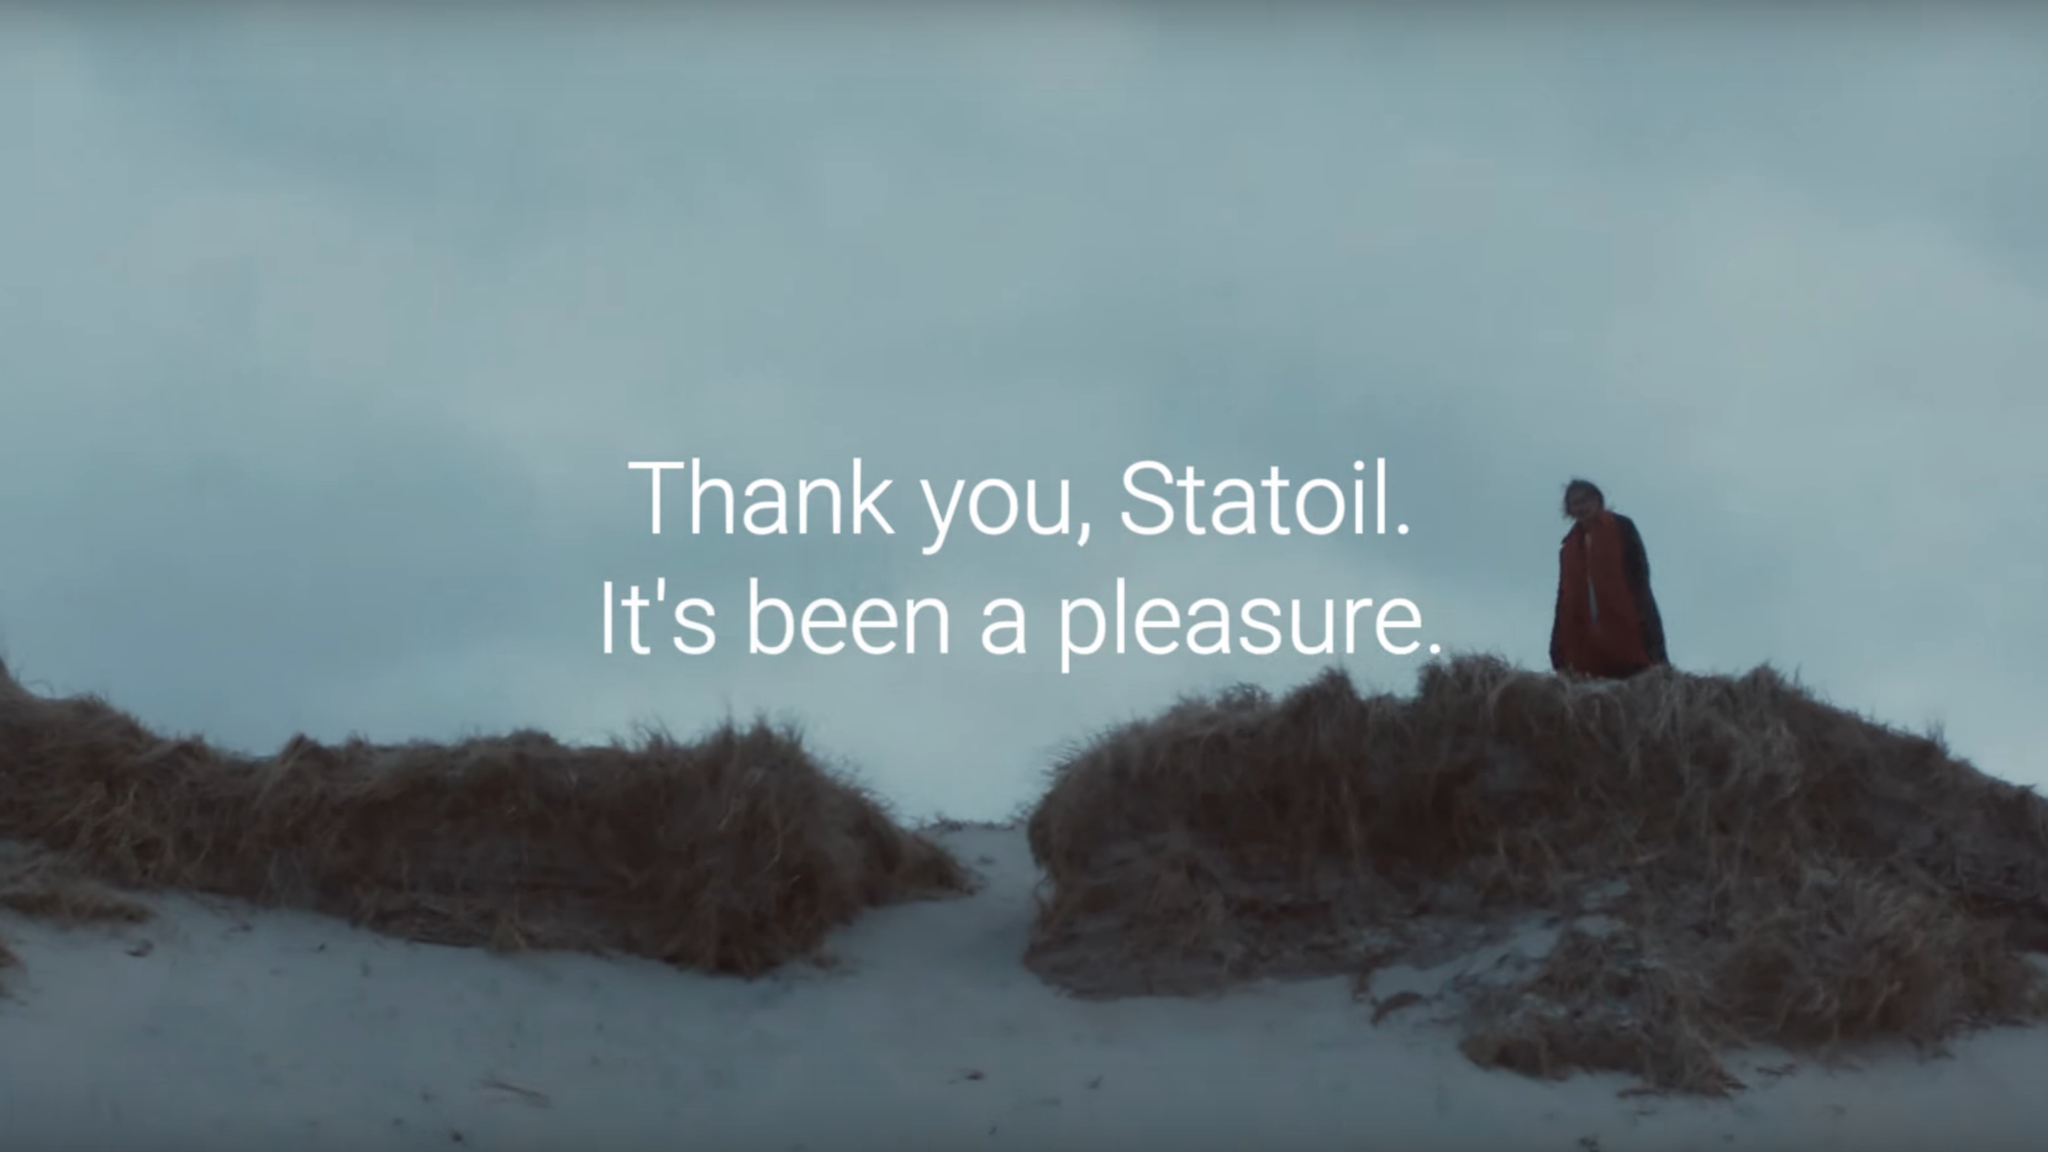 Statoil is to rebrand as Equinor